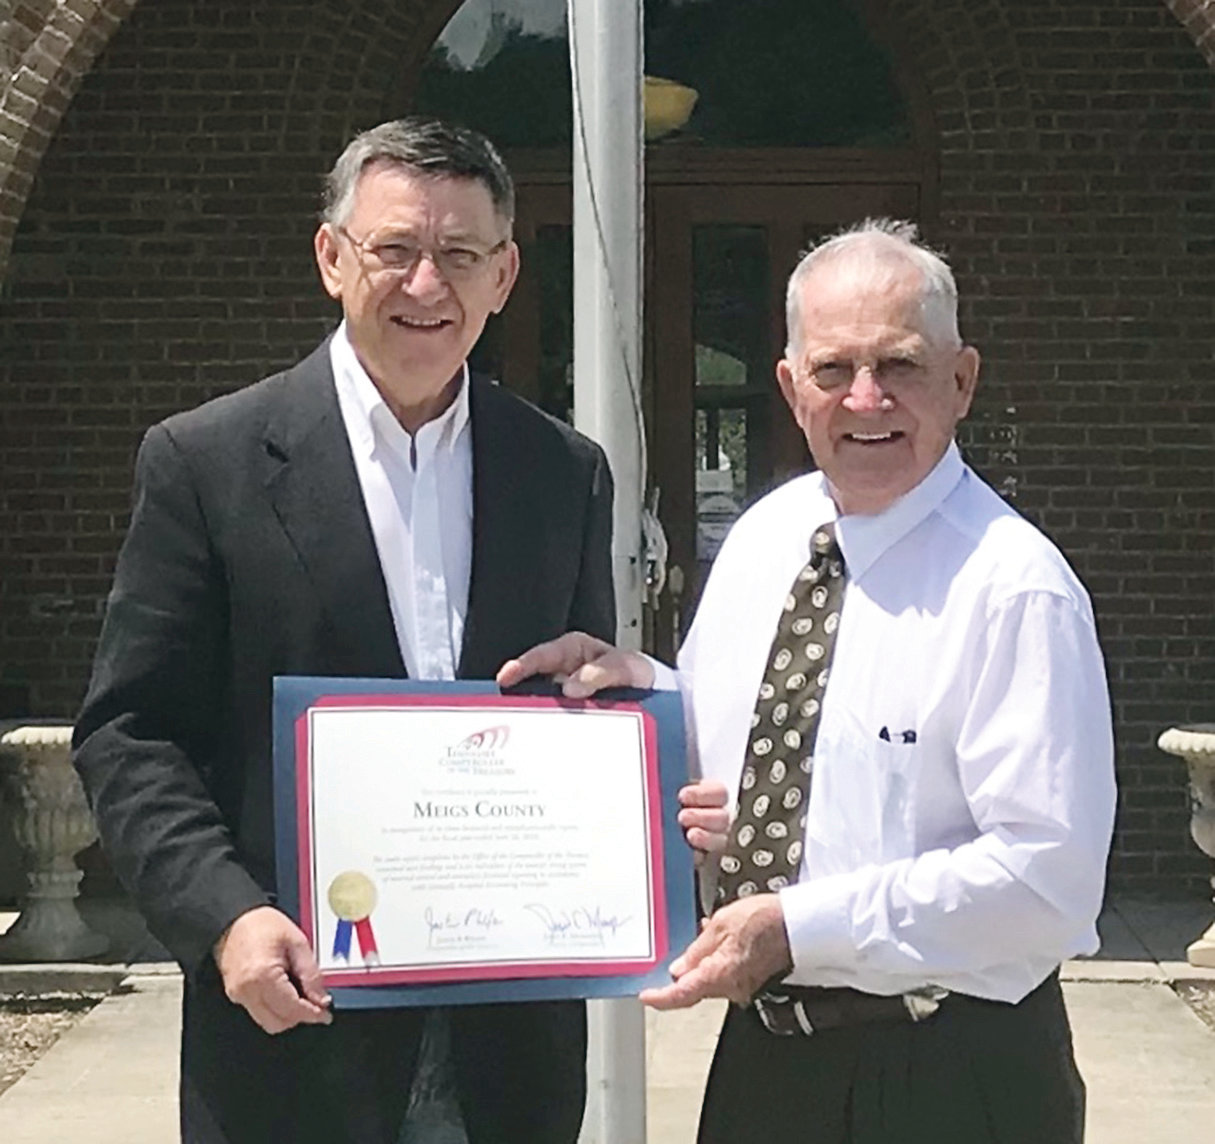 STATE REP. DAN HOWELL, left, presents a Certificate of Achievement to Meigs County Mayor Bill James on behalf of the Tennessee Comptroller's Office. The recognition honors the Meigs County mayor's office and finance department for a clean audit as conducted by the state office. Also honoring Meigs County government was state Sen. Mike Bell who could not attend the certificate presentation.